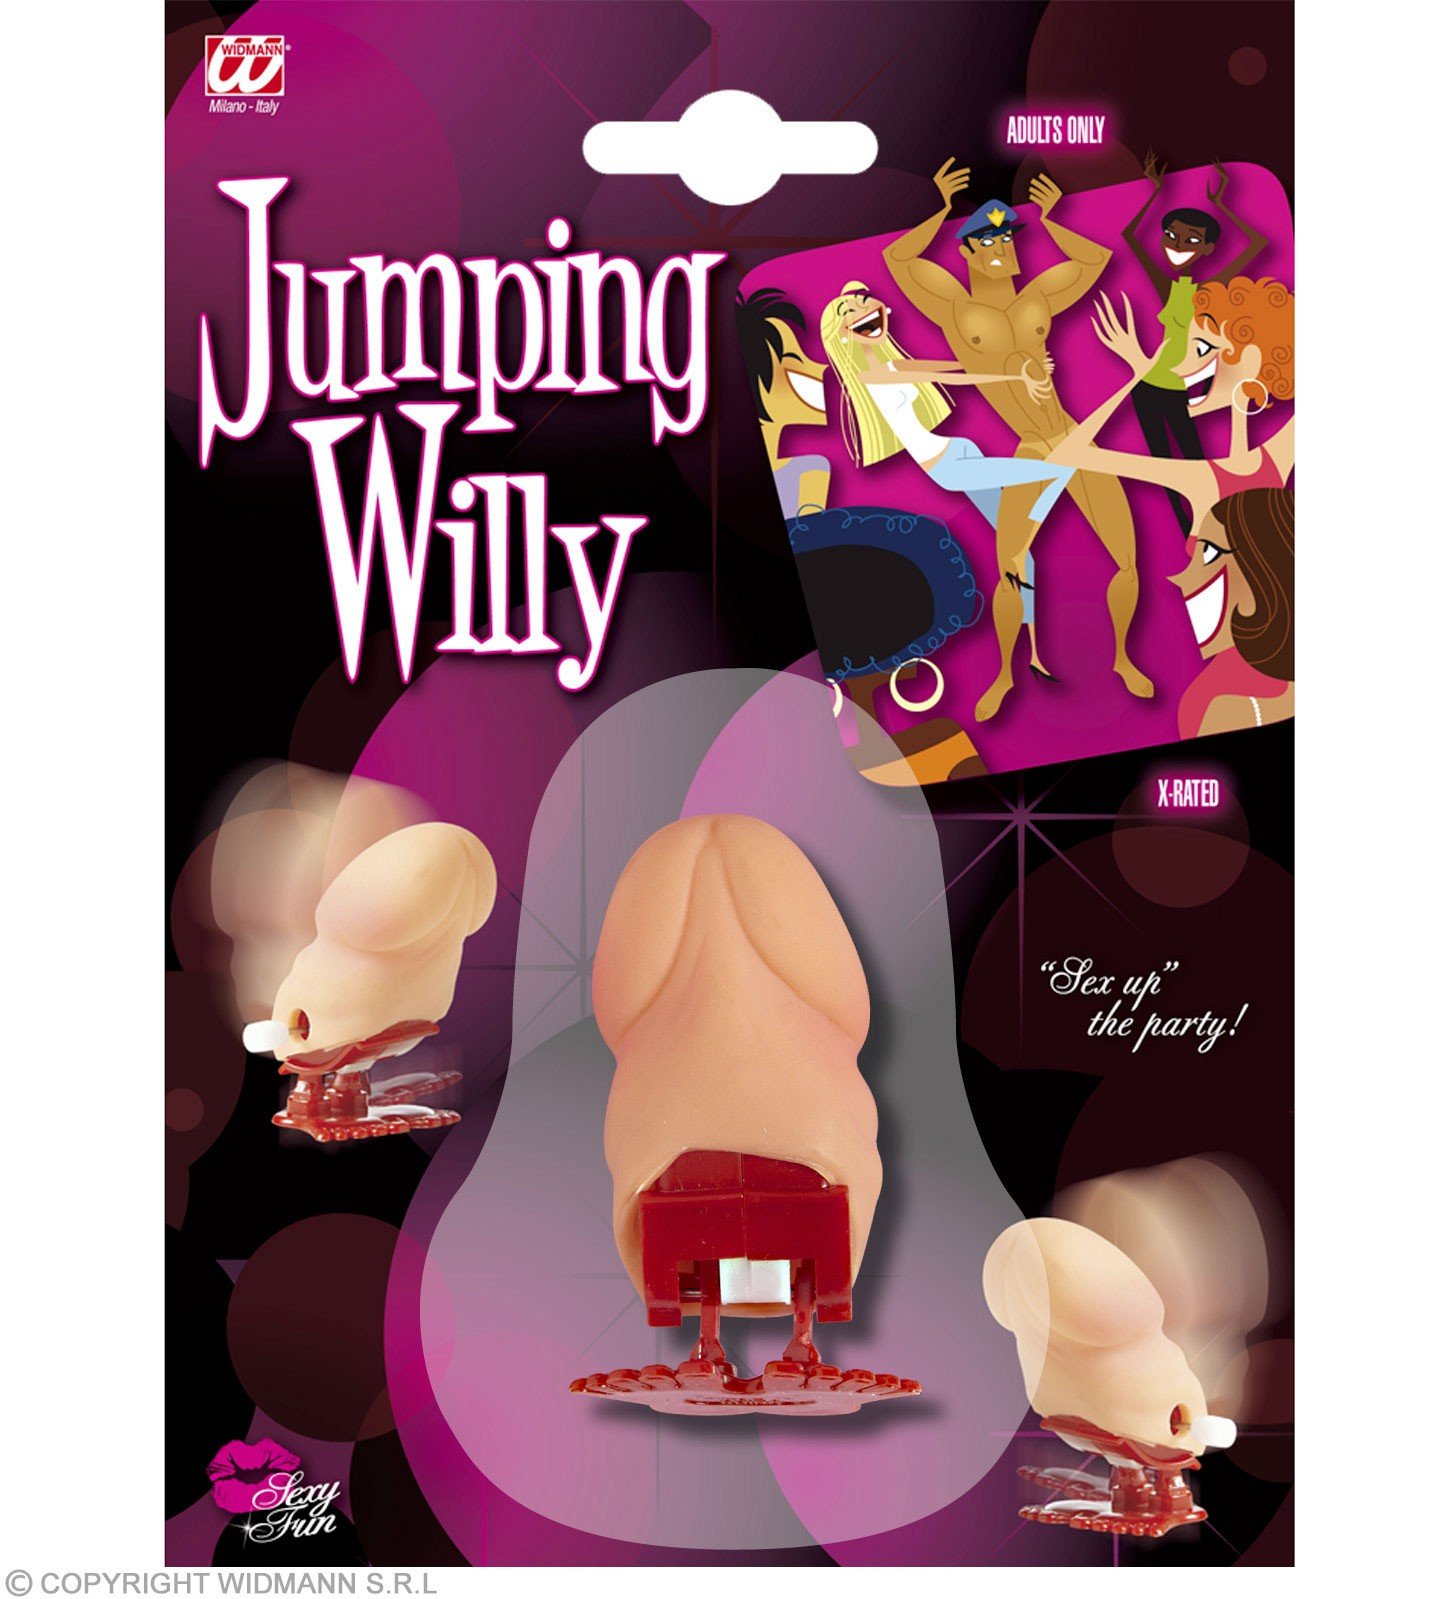 Jumping Willy Other